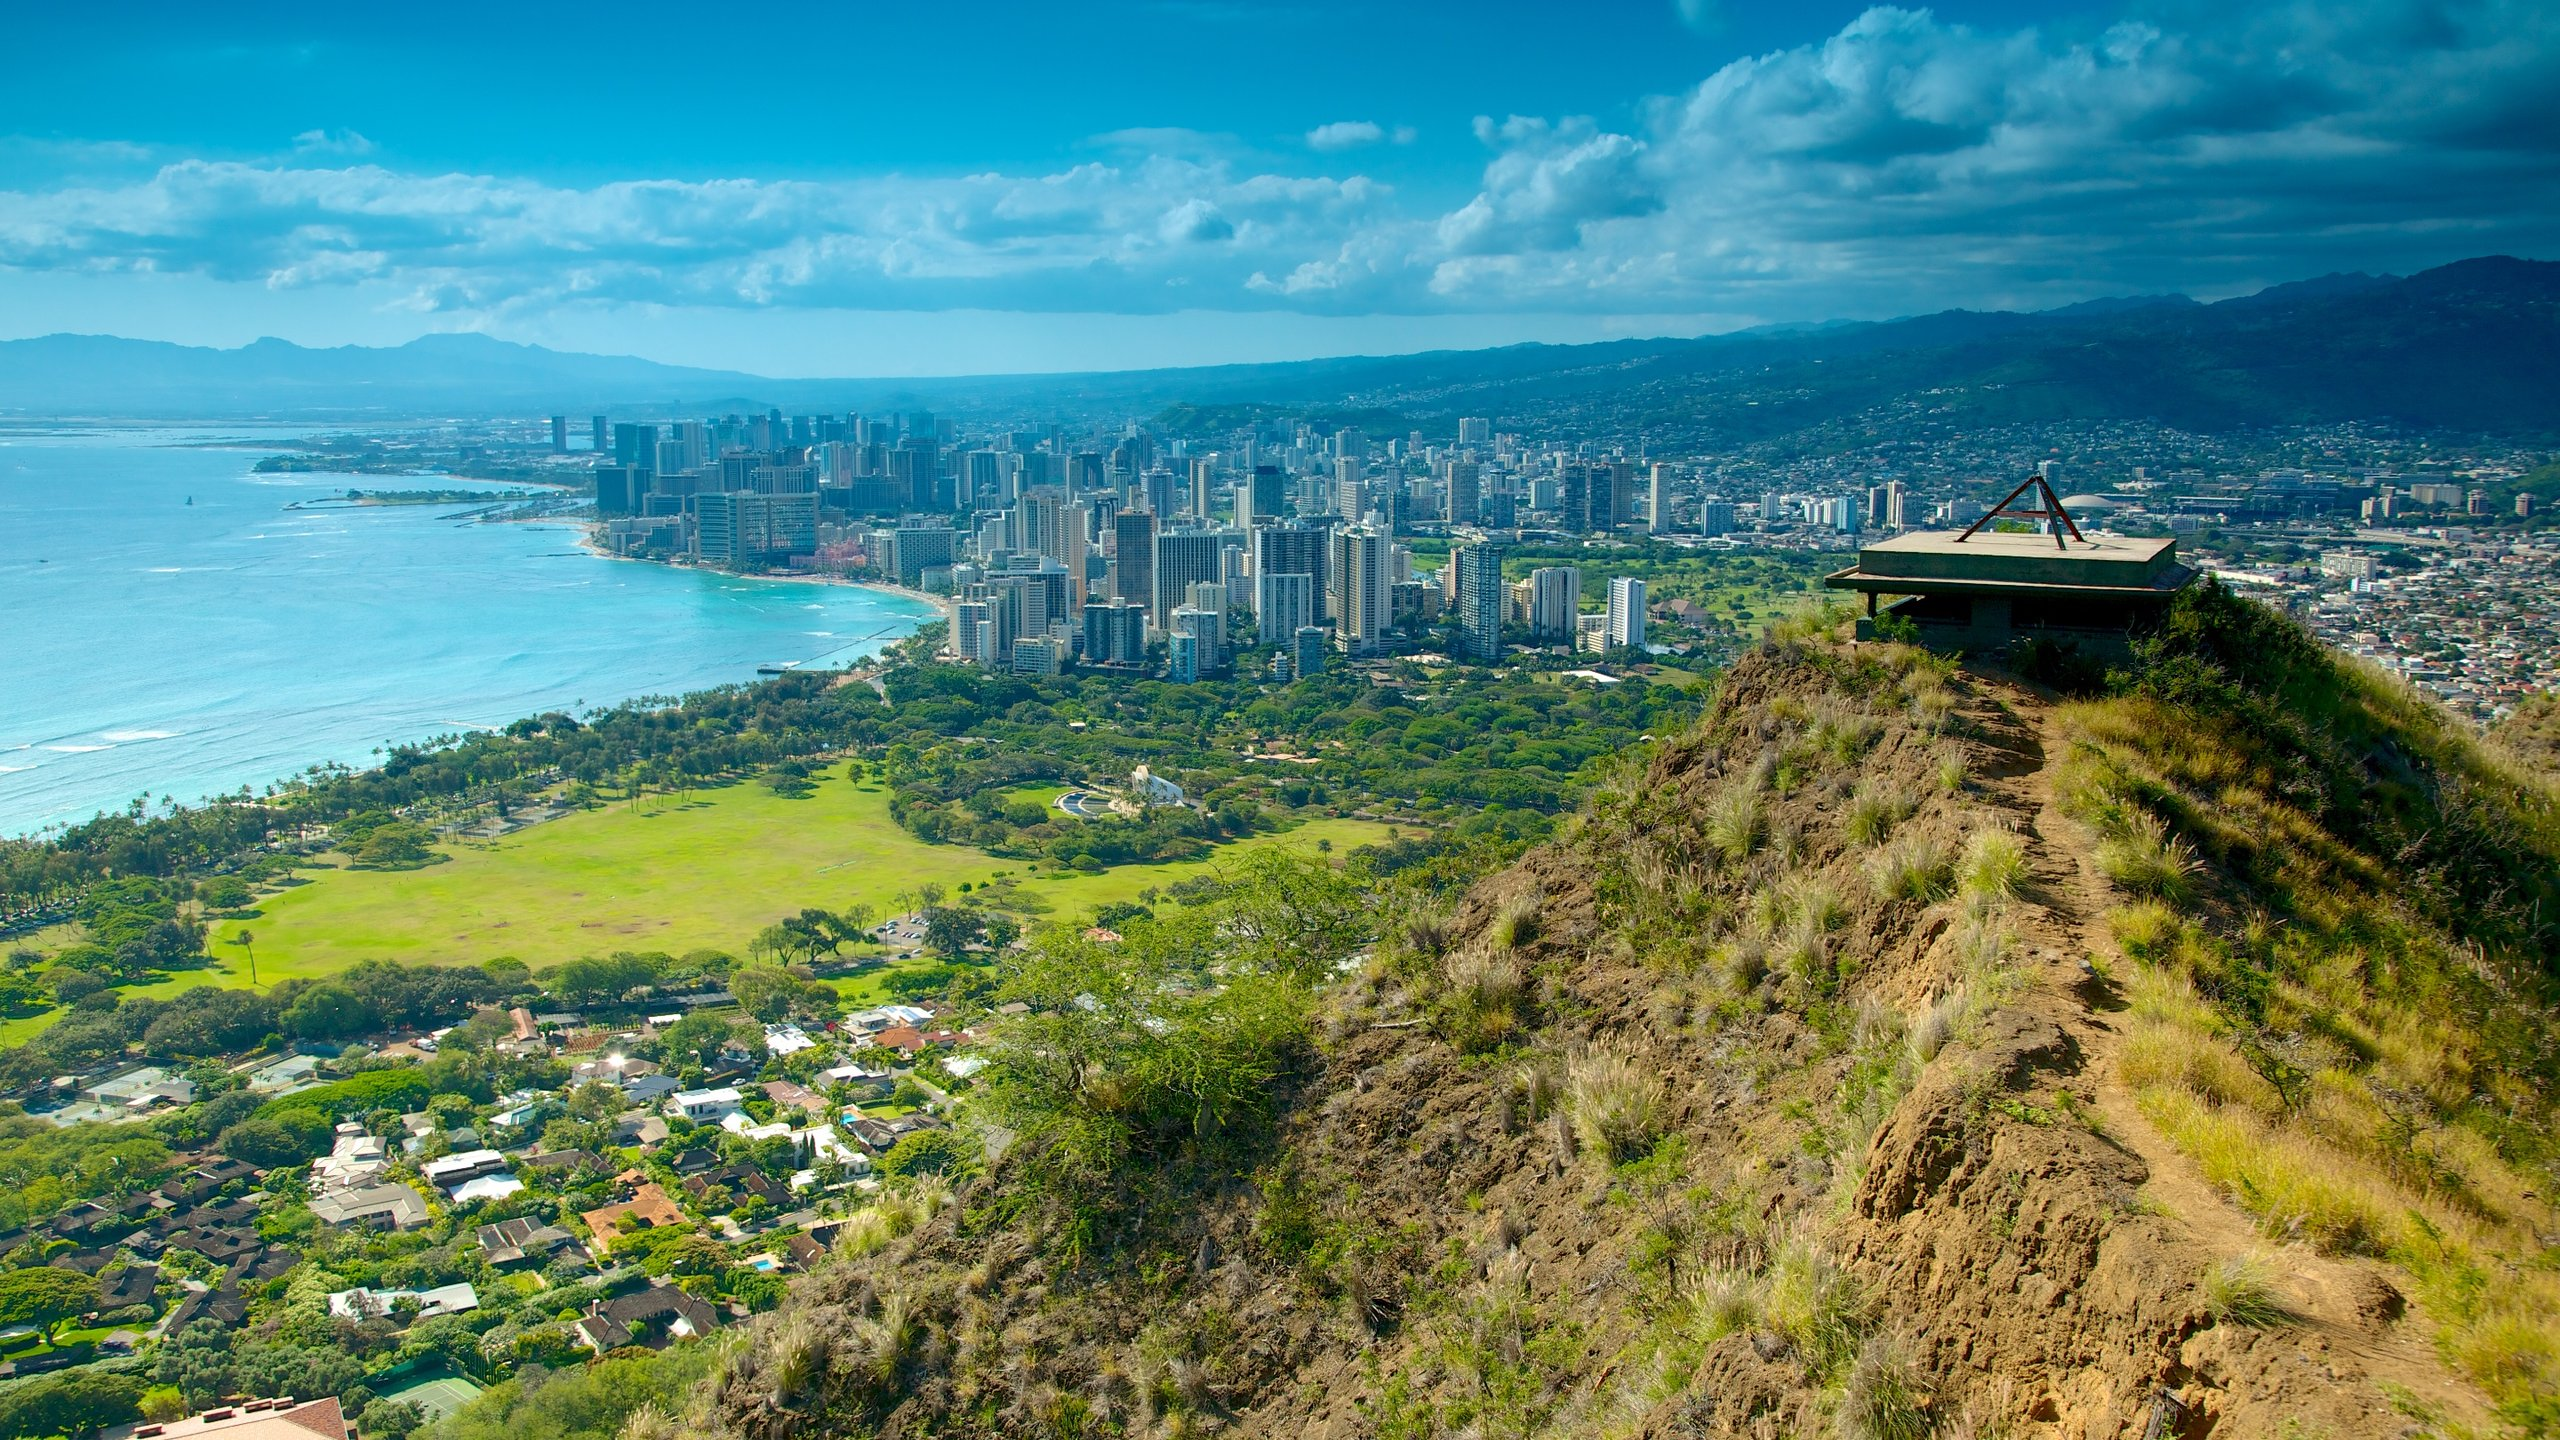 Hawaii Vacation Rentals from 65 Search ShortTerm